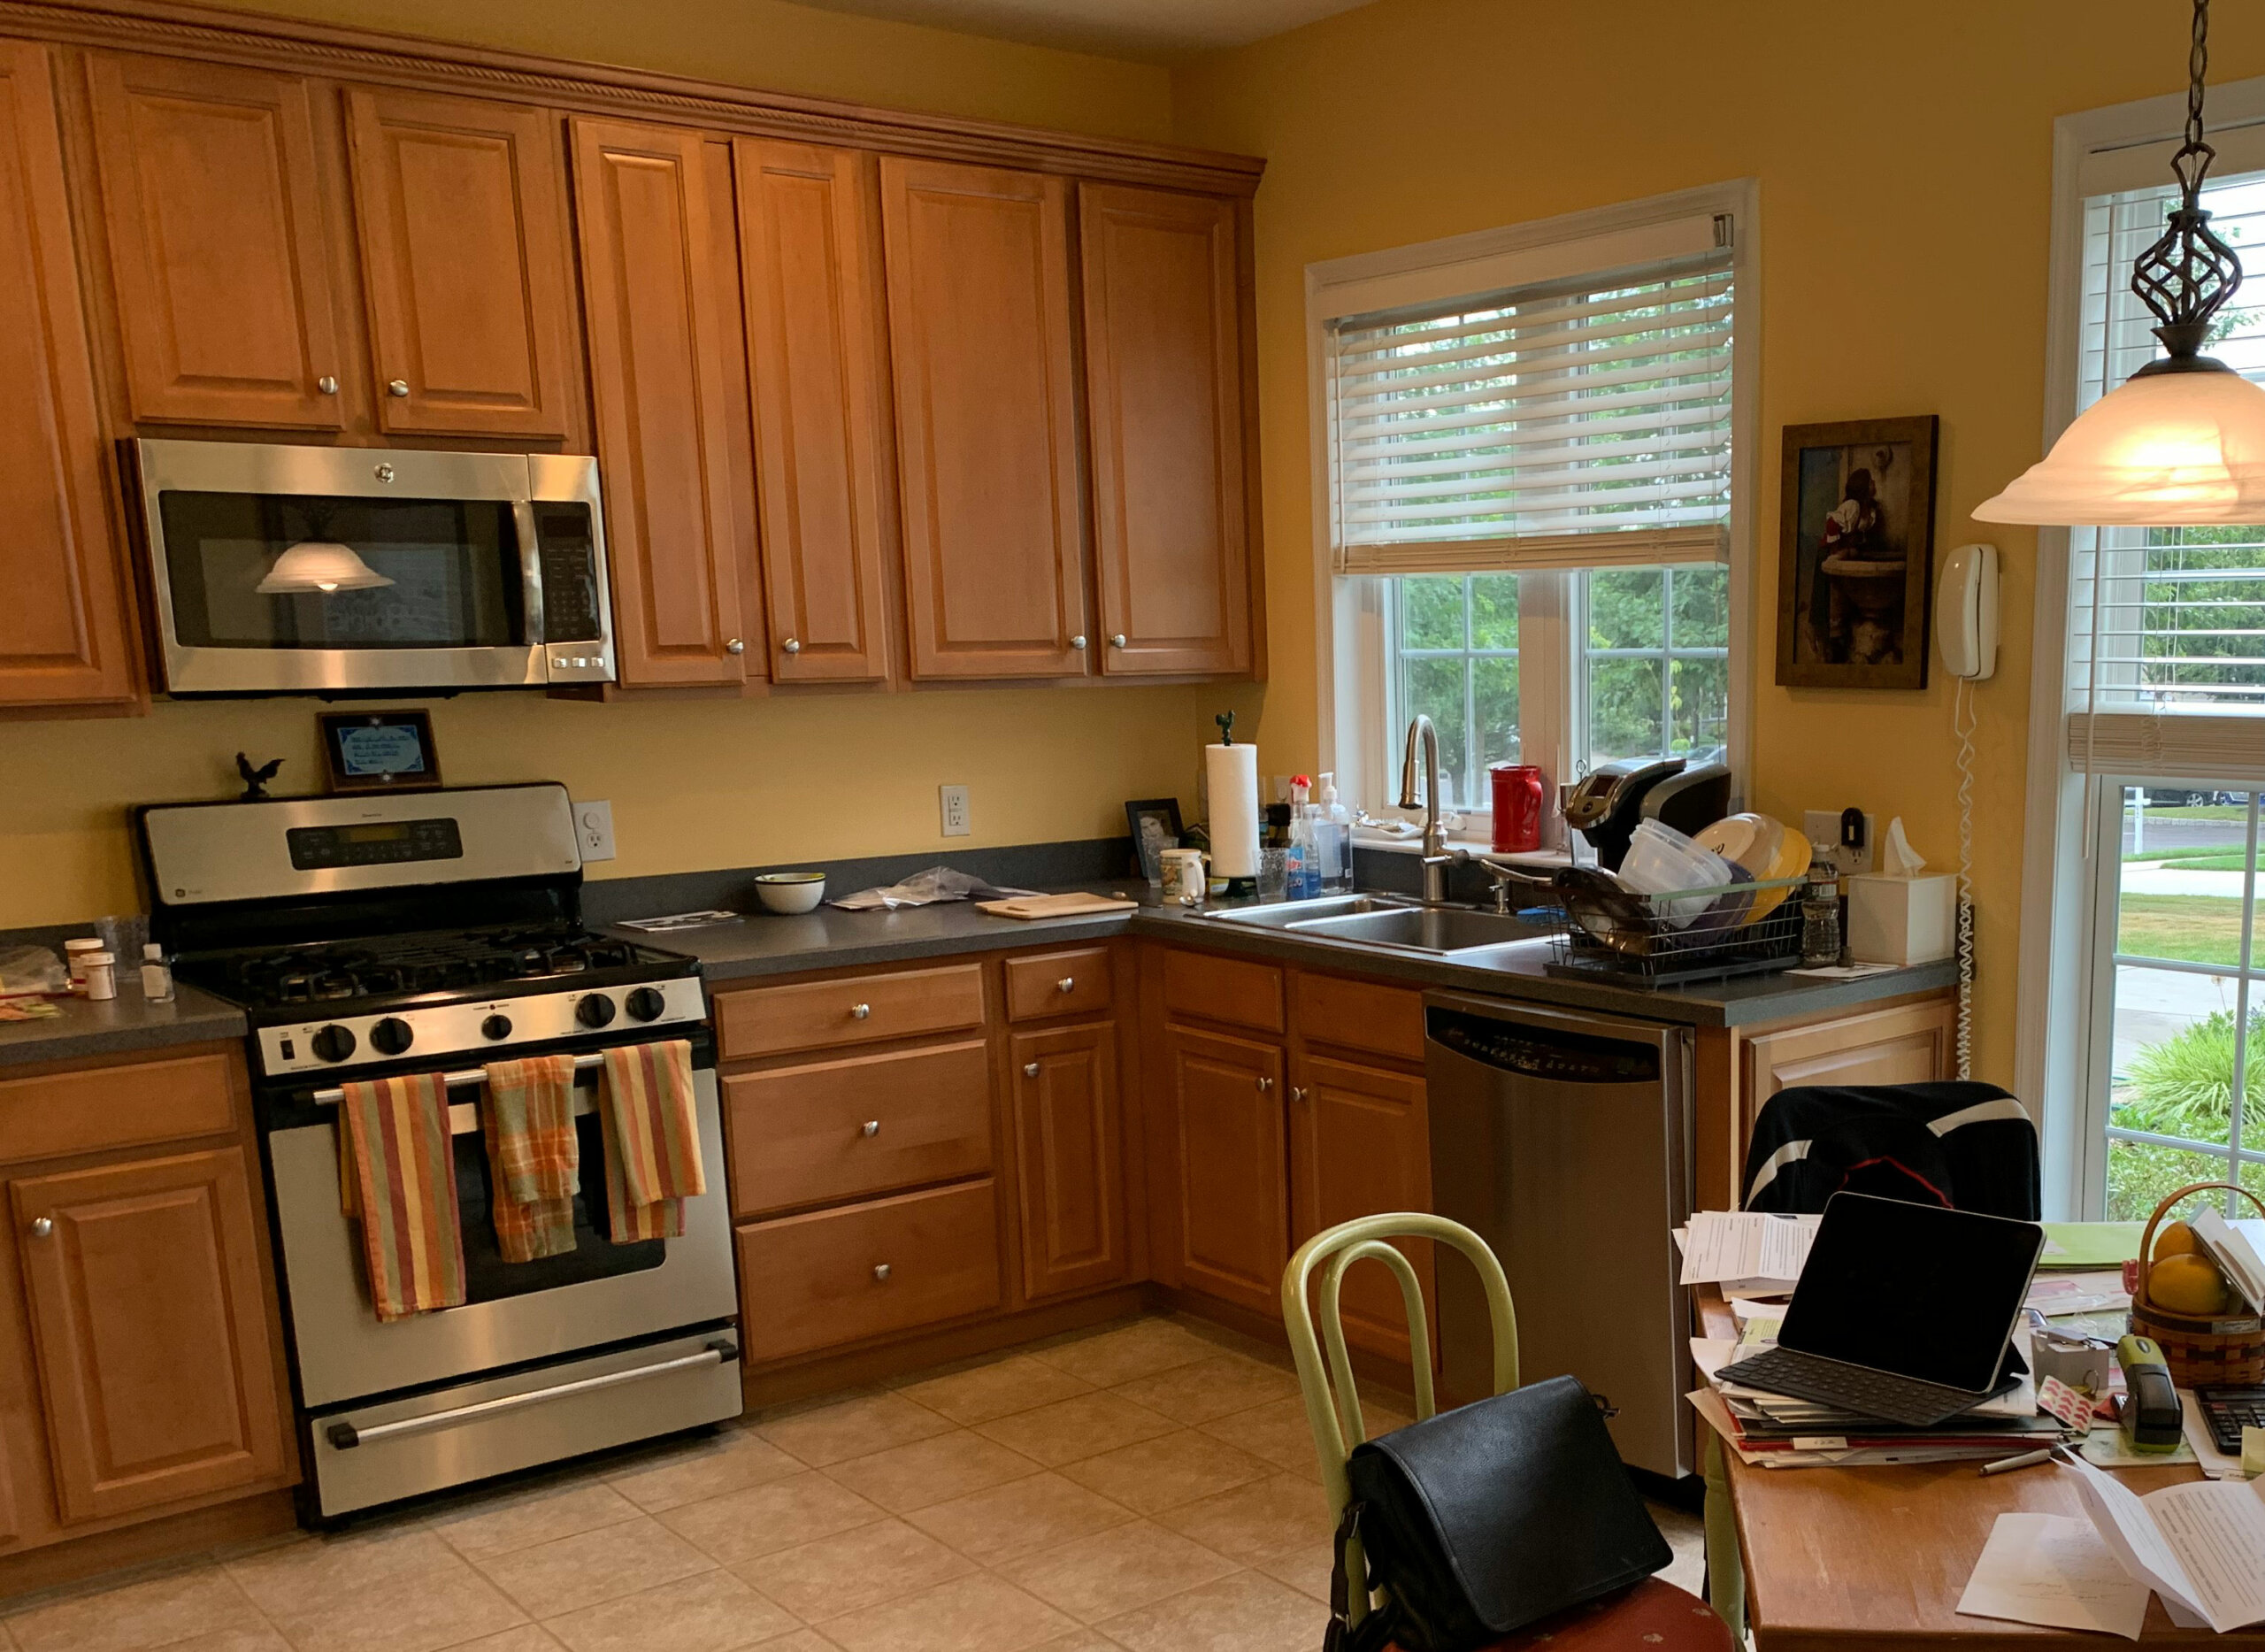 Planning & Budgeting for a Complete Kitchen Redo